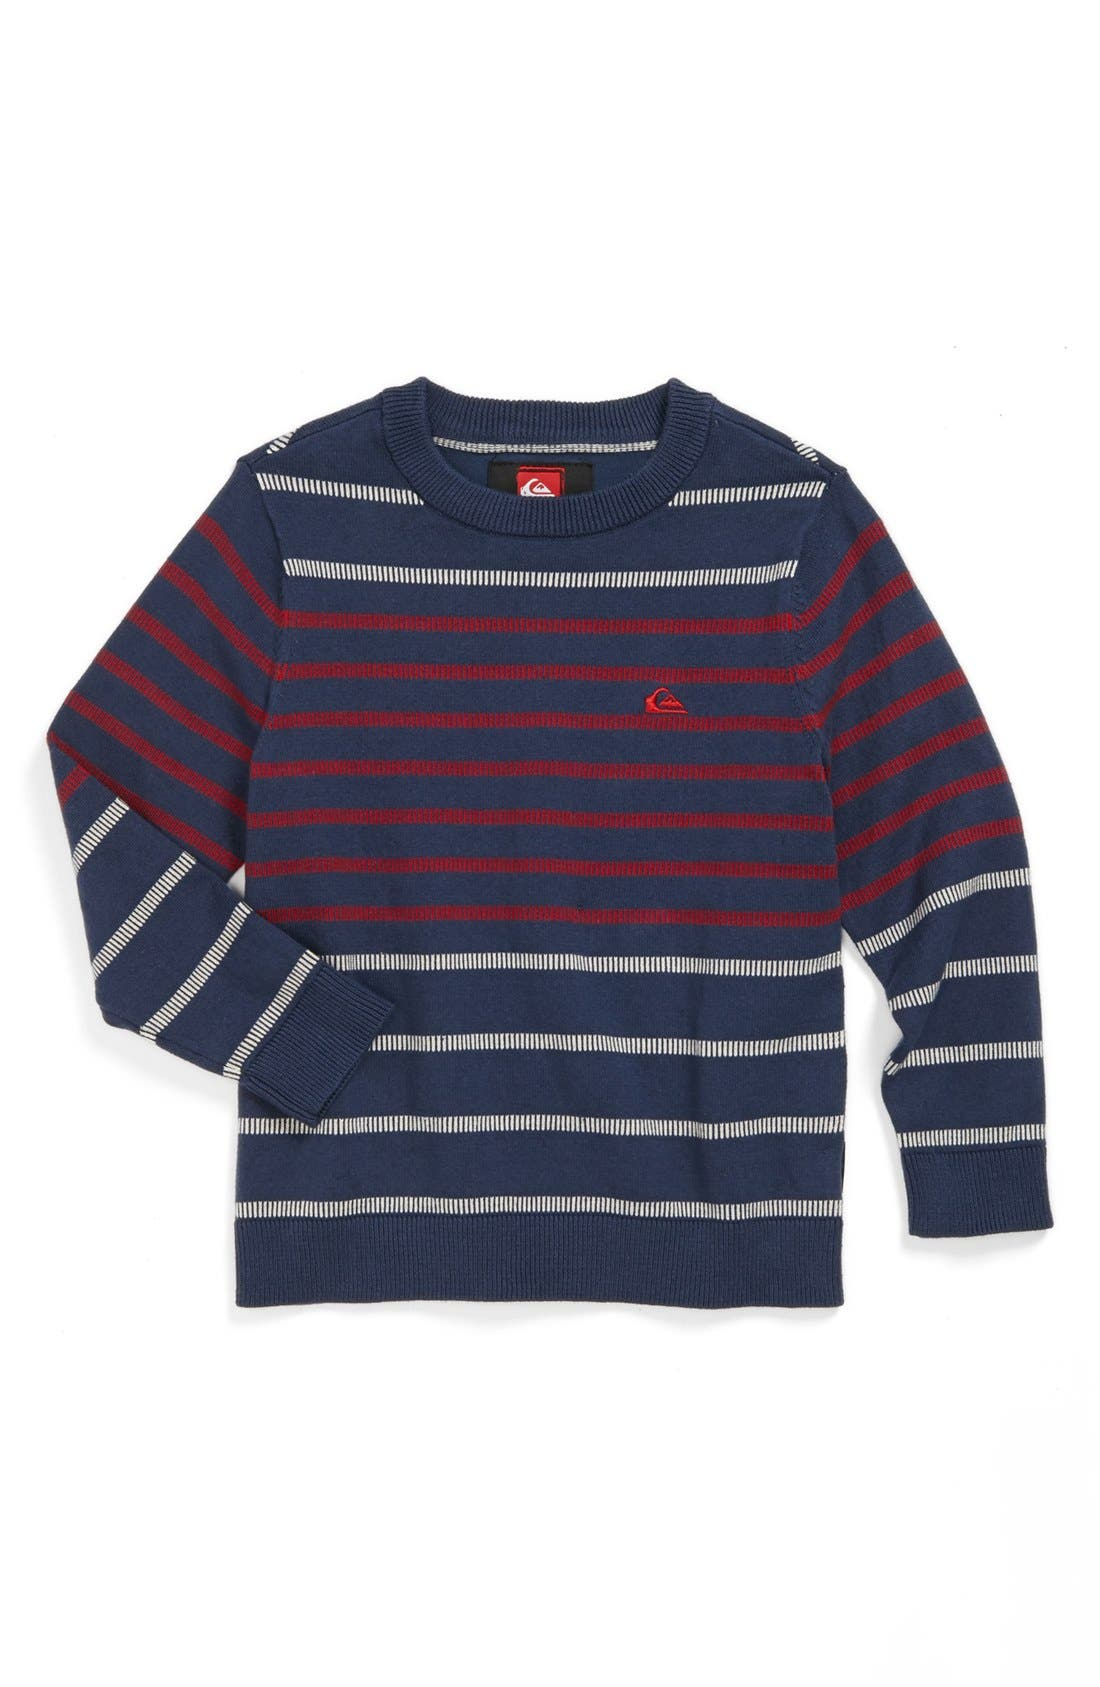 Alternate Image 1 Selected - Quiksilver 'Sweet Fears' Cotton Blend Sweater (Toddler Boys)